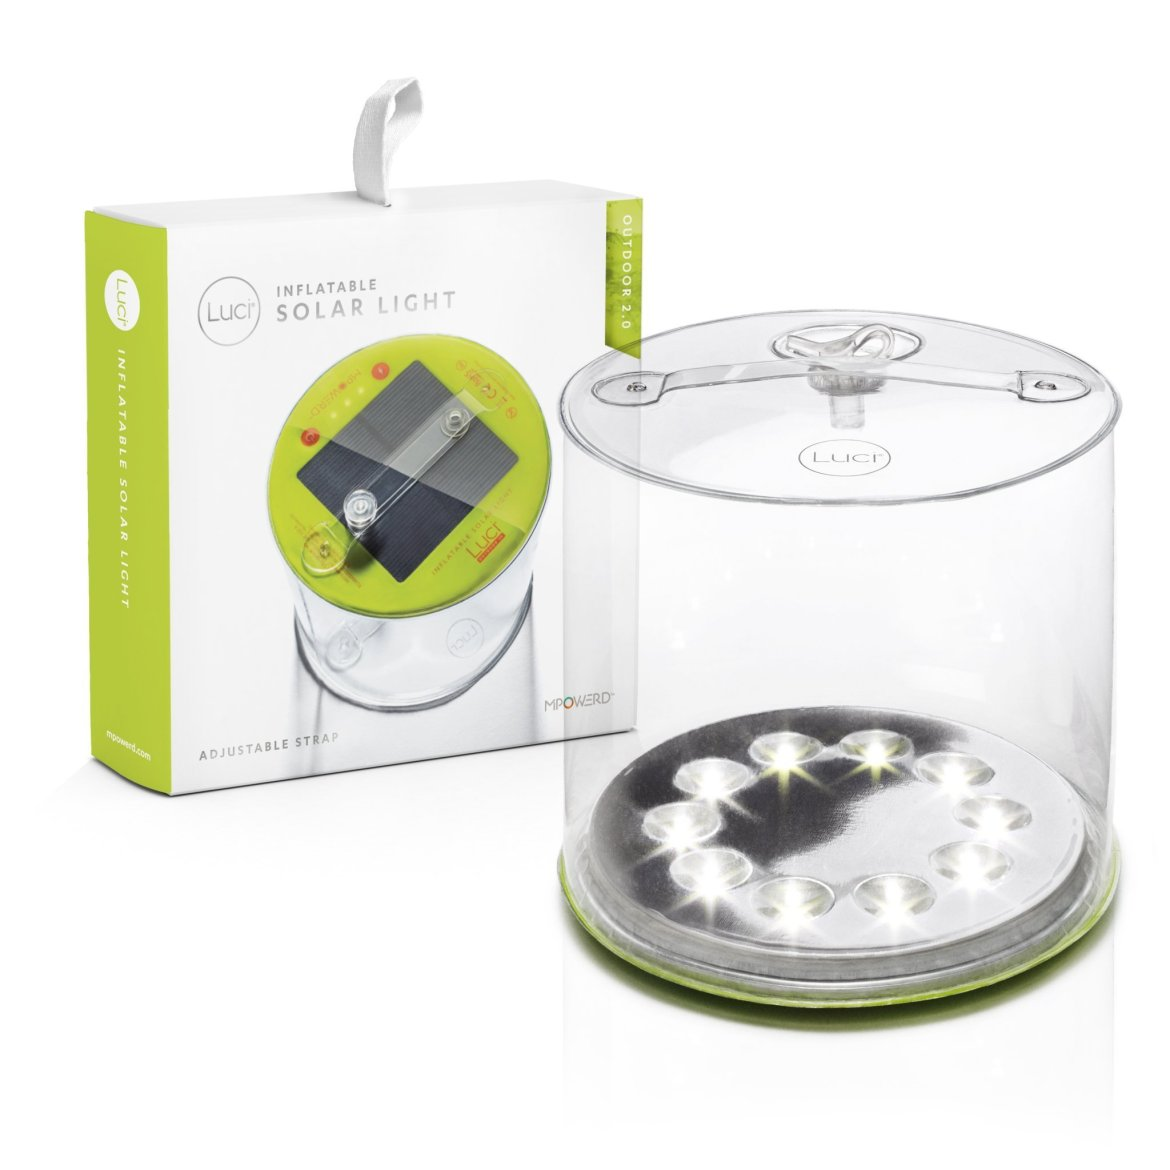 MPOWERD Inflatable Solar Light